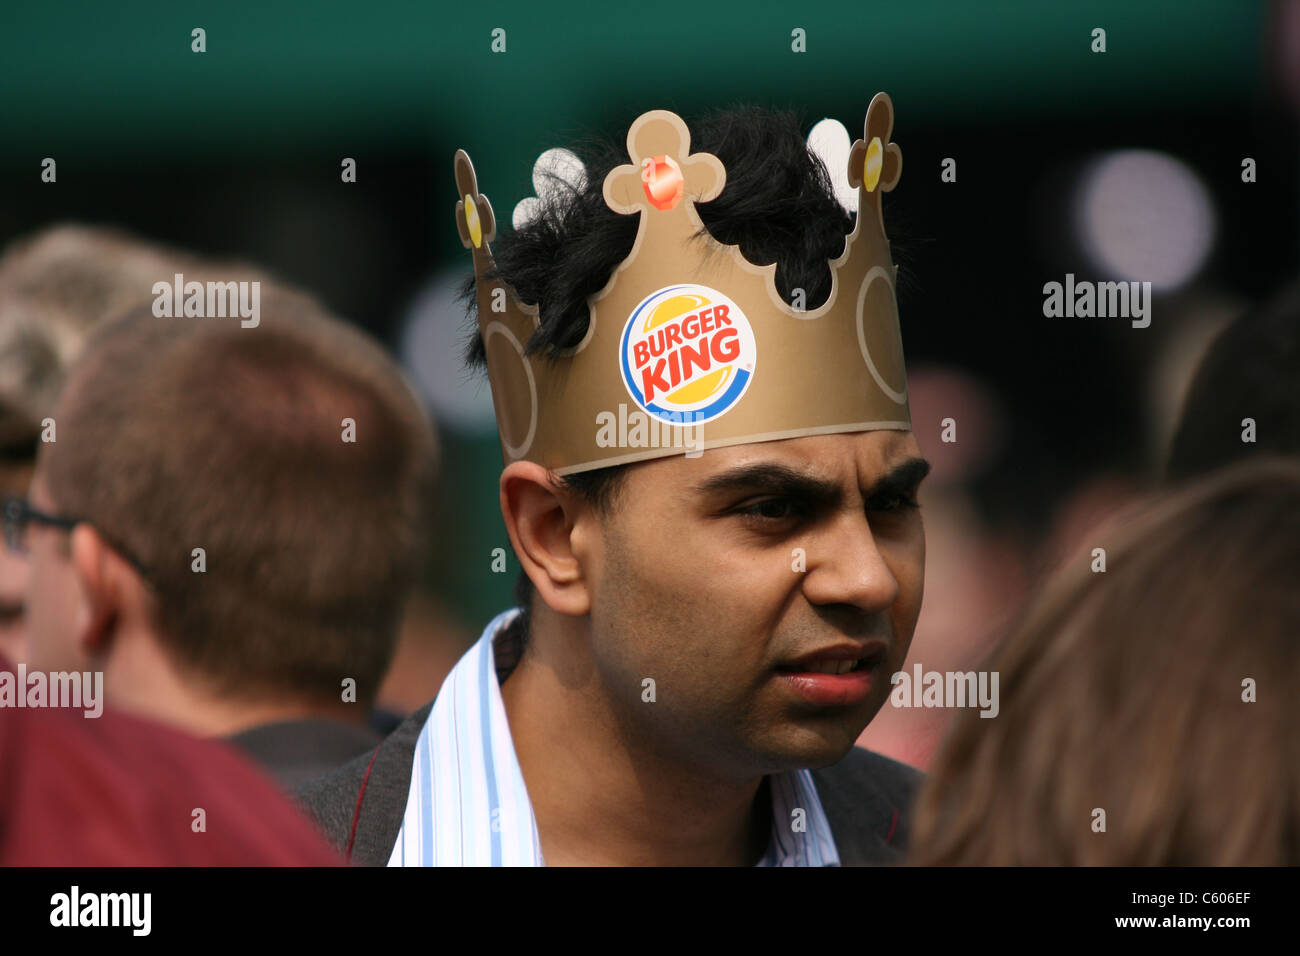 burger king crown stock photos burger king crown stock images alamy